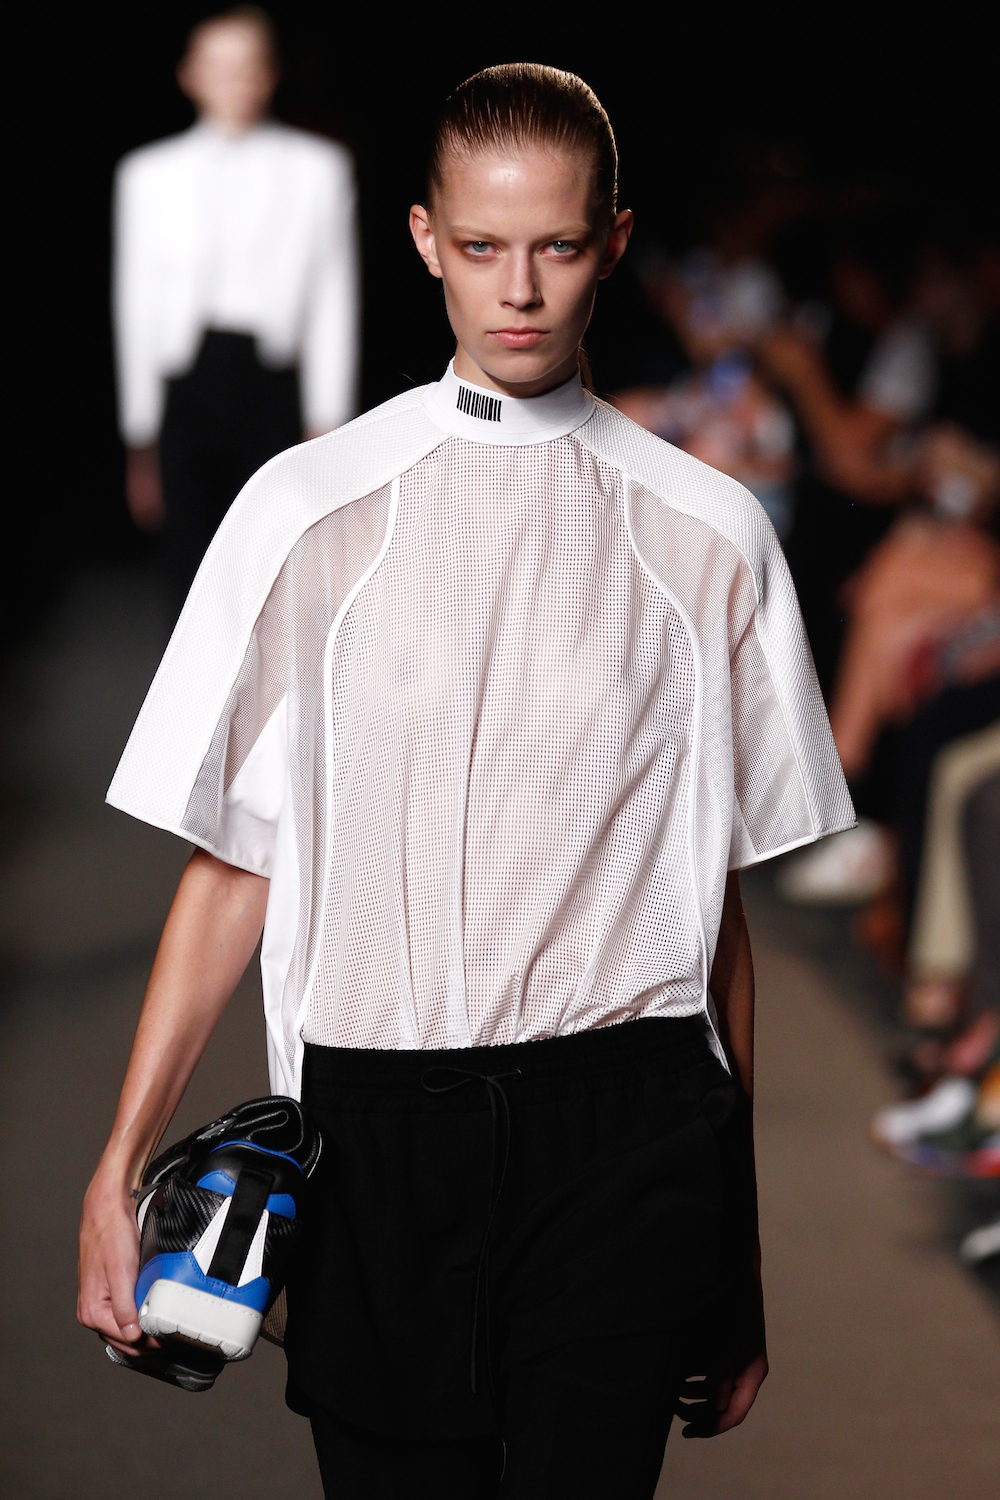 Alexander Wang - Runway - Mercedes-Benz Fashion Week Spring 2015